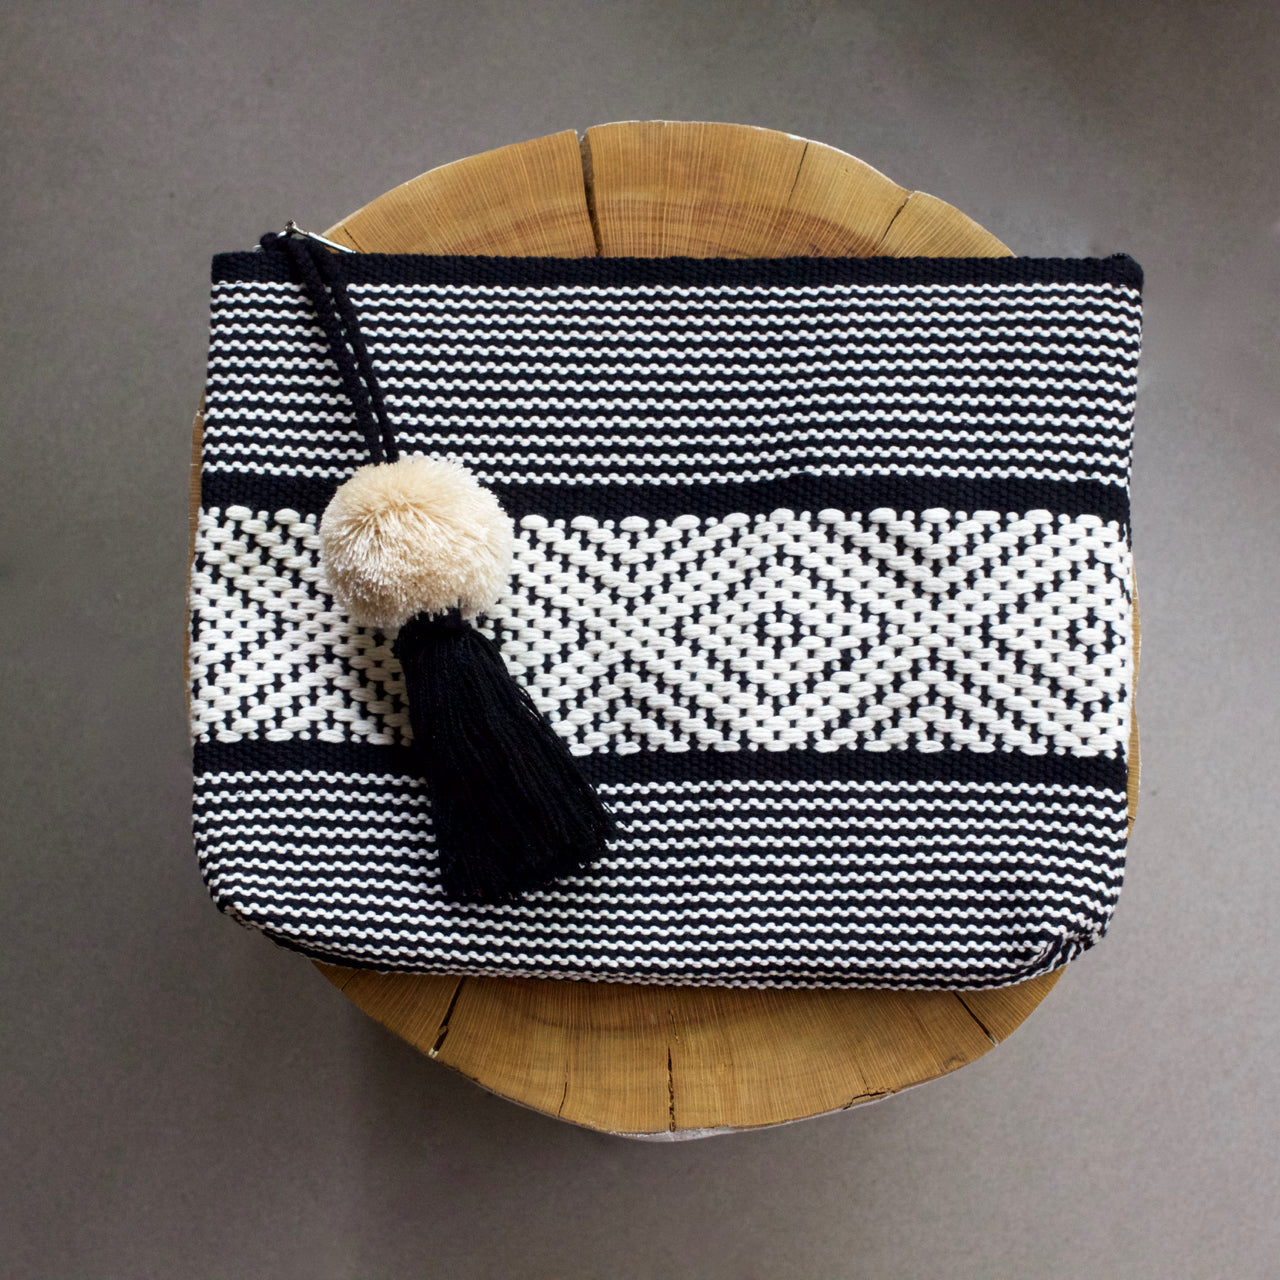 Jalieza Diamond Clutch 33  Clutch Black & White - Cielo Collective handmade Mexico Guatemala